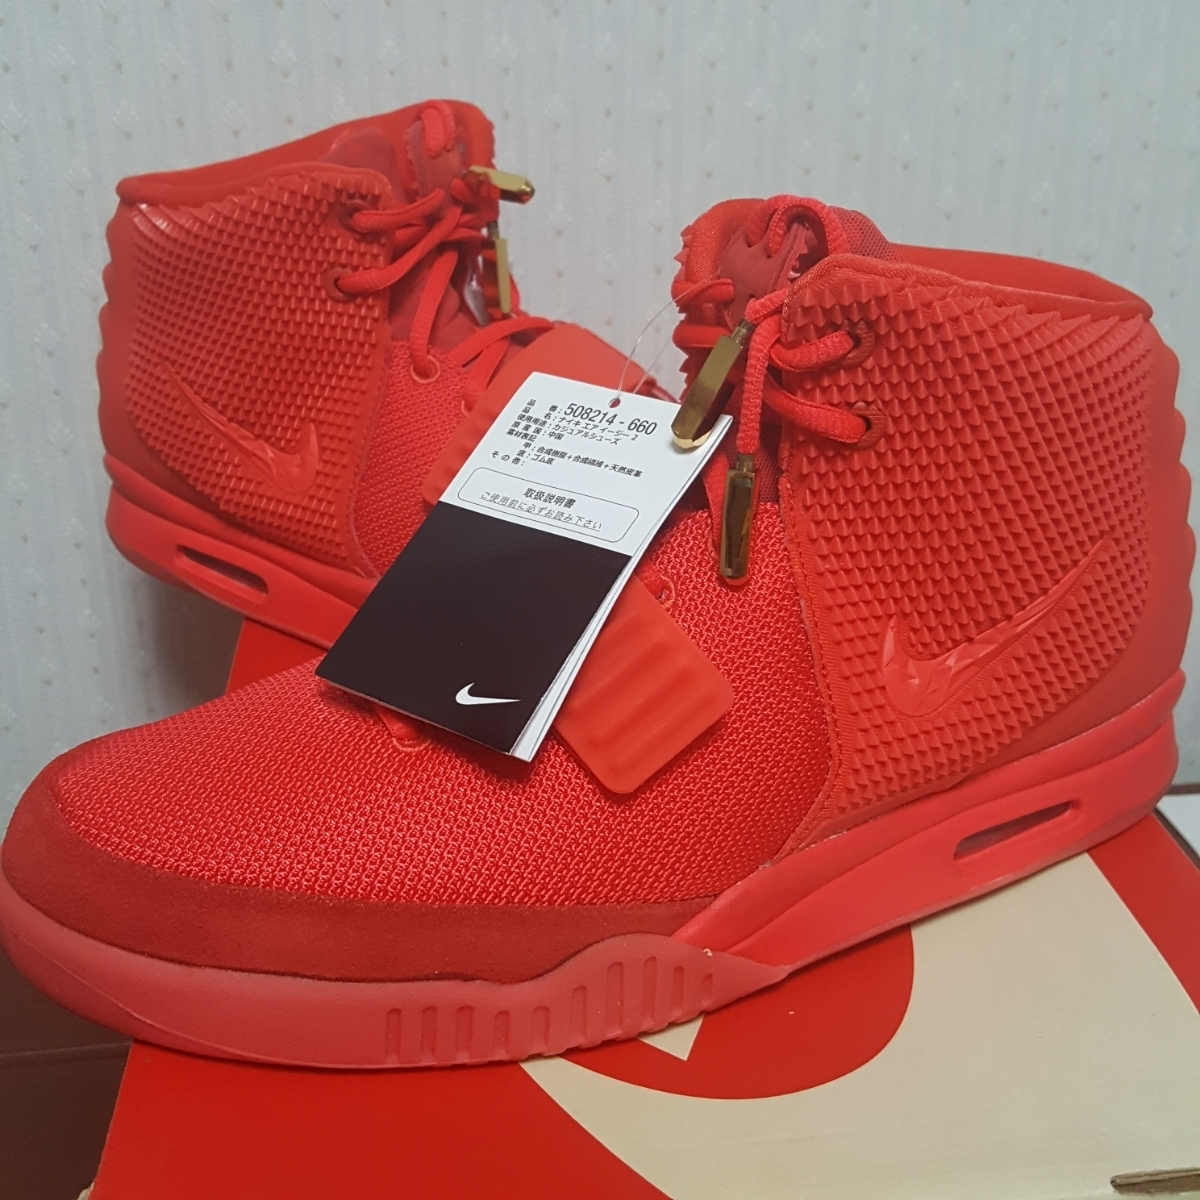 new photos 0700b 22493 red october nike air yeezy 2 sneakers